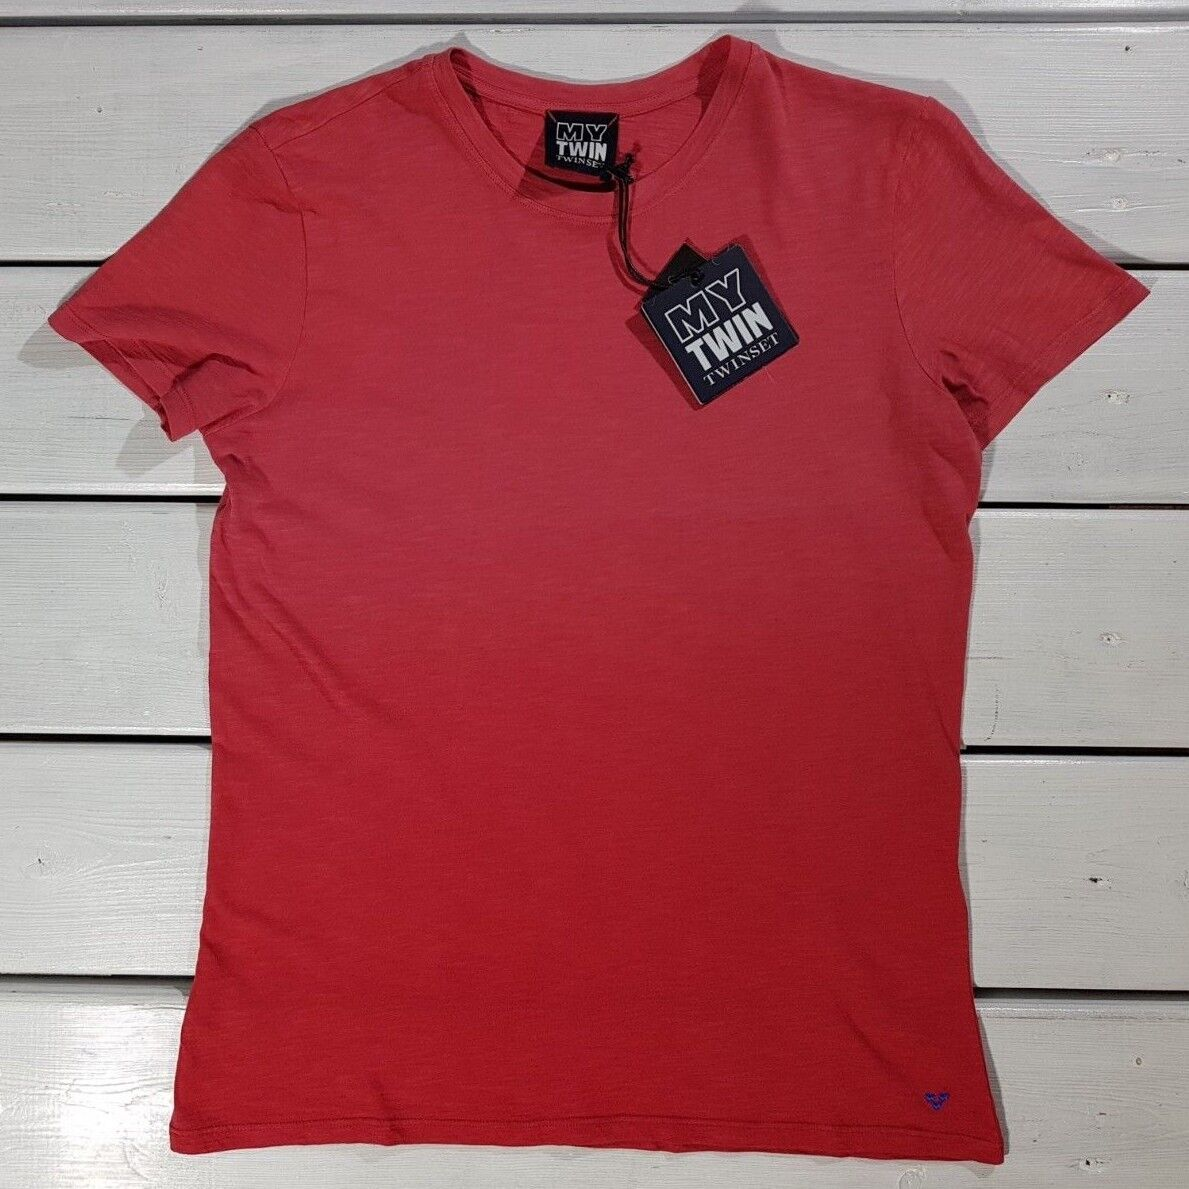 NEW MY TWIN TWINSET MEN'S T-SHIRTS SIZE S RED COTTON SHORT SLEEVE red DI OMBRE